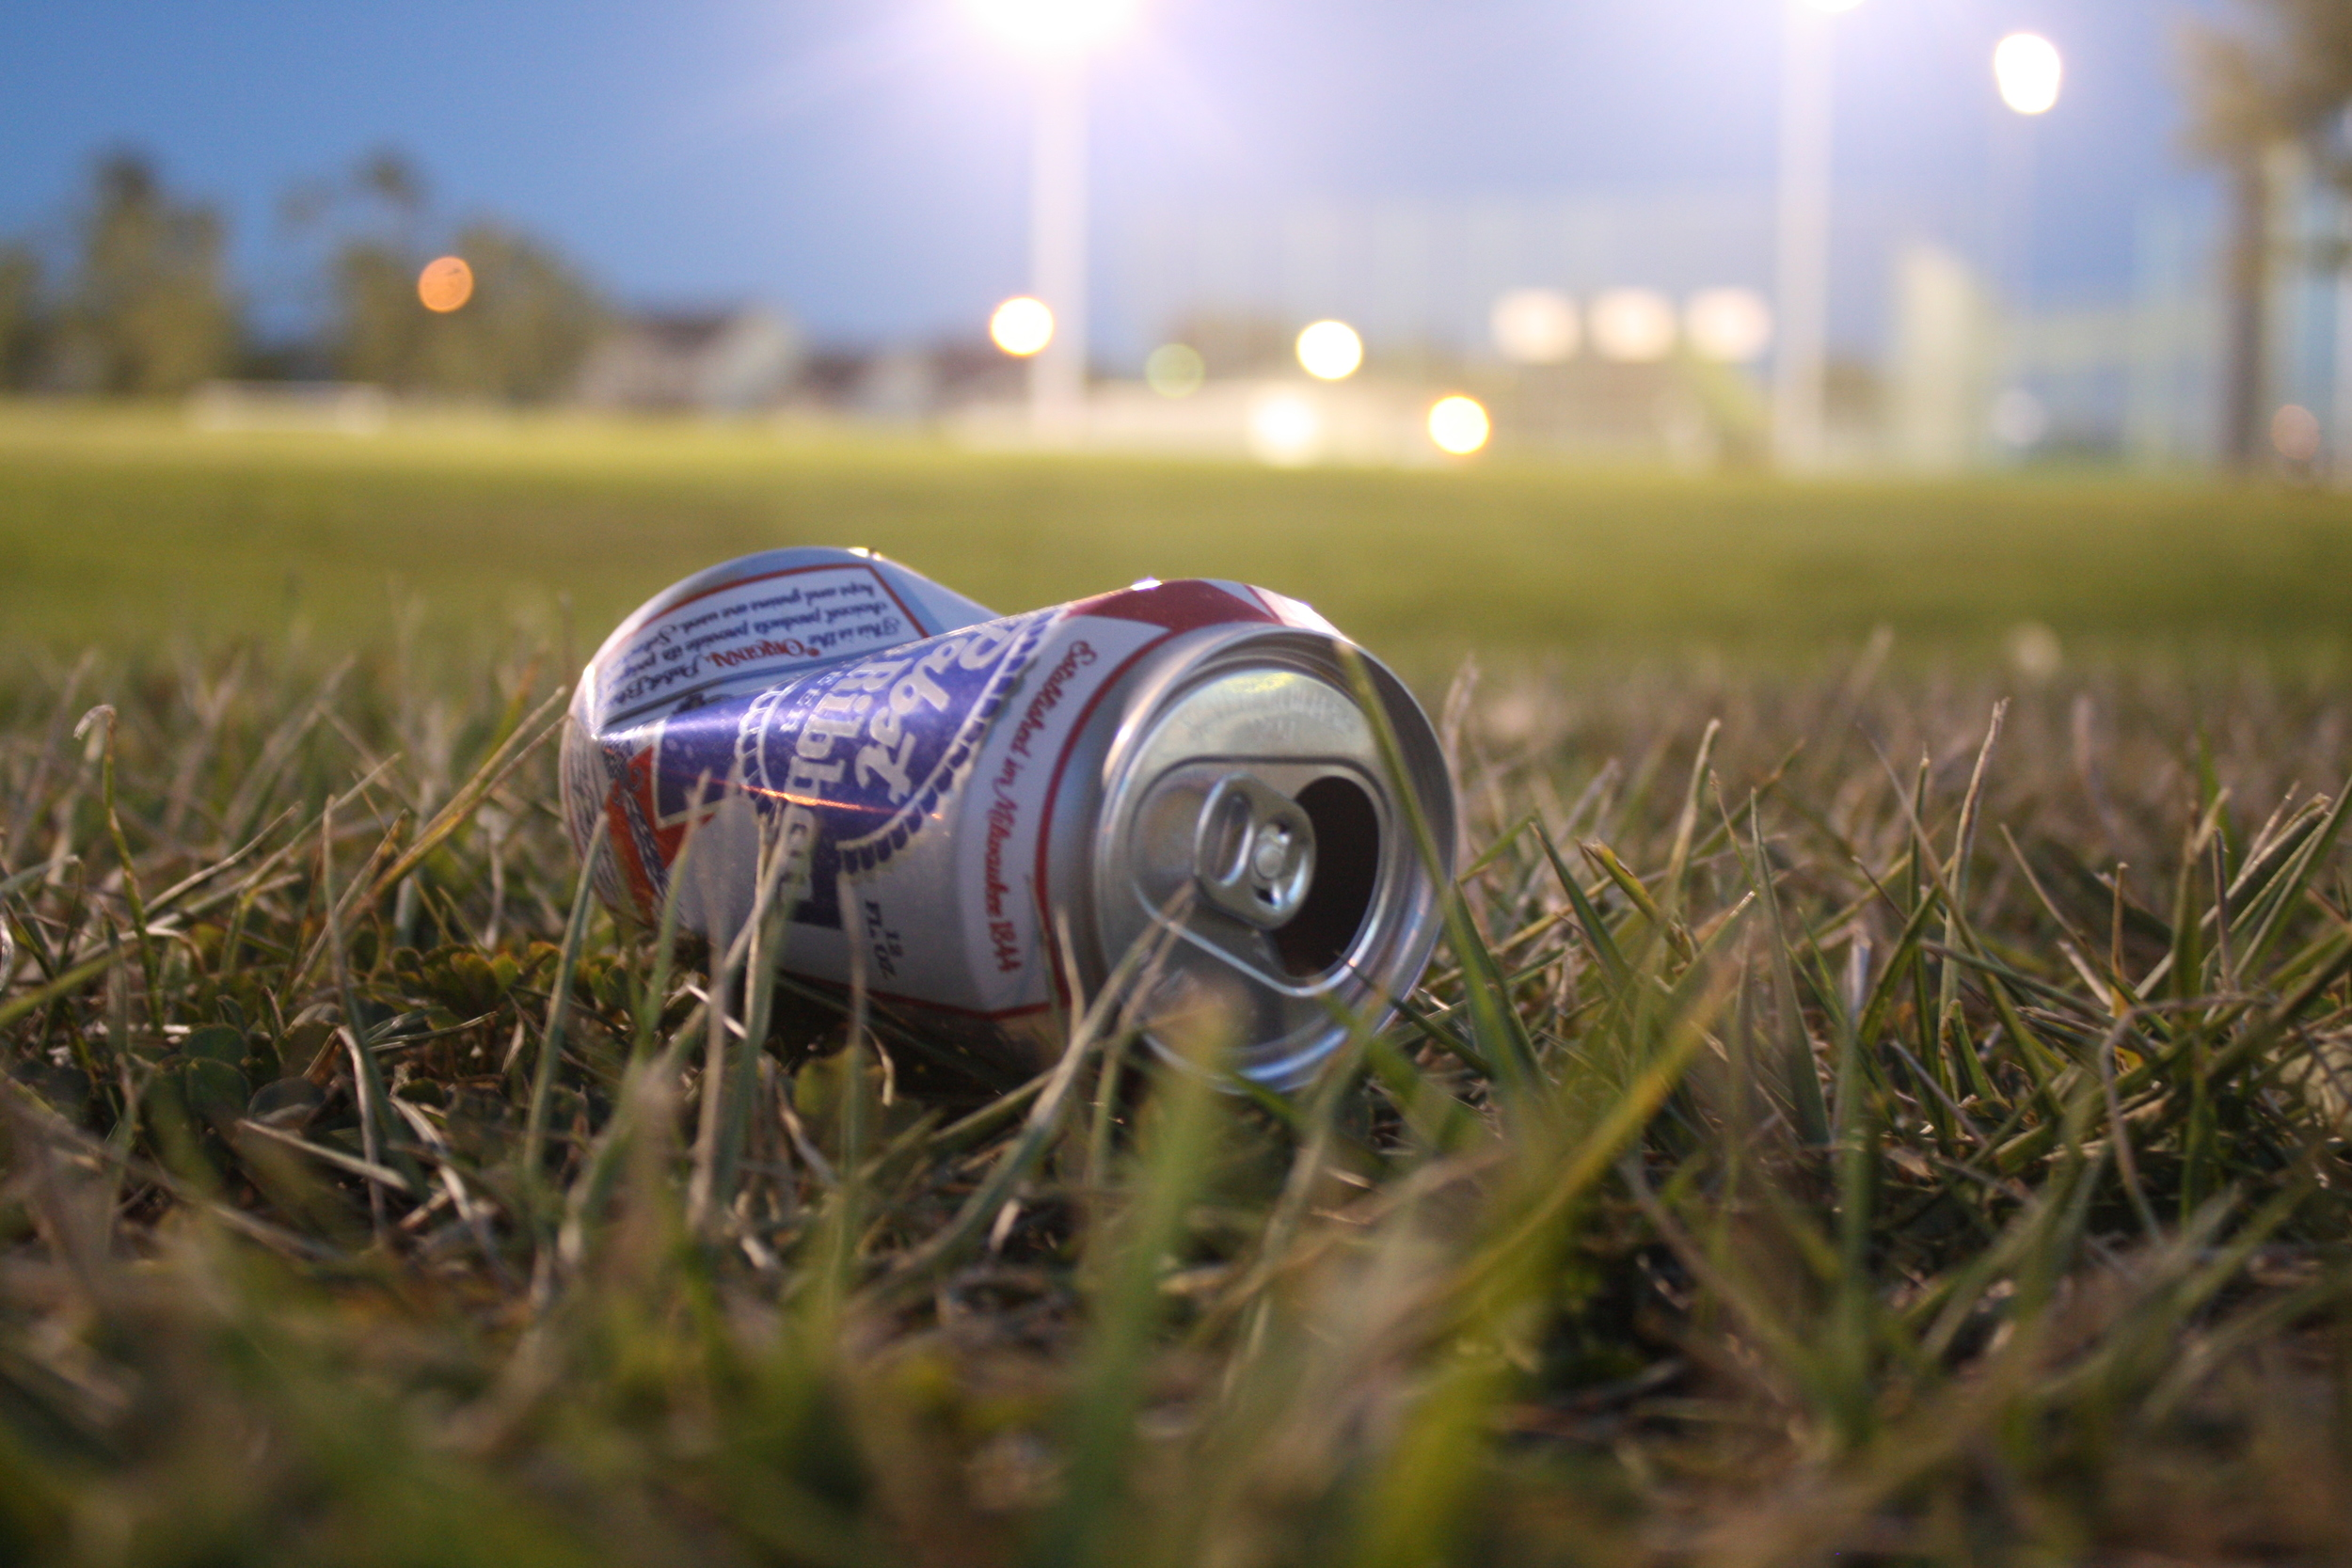 STAR // Katie McDonagh    Consistent litter after parties has been a main complaint of M-Section residents.